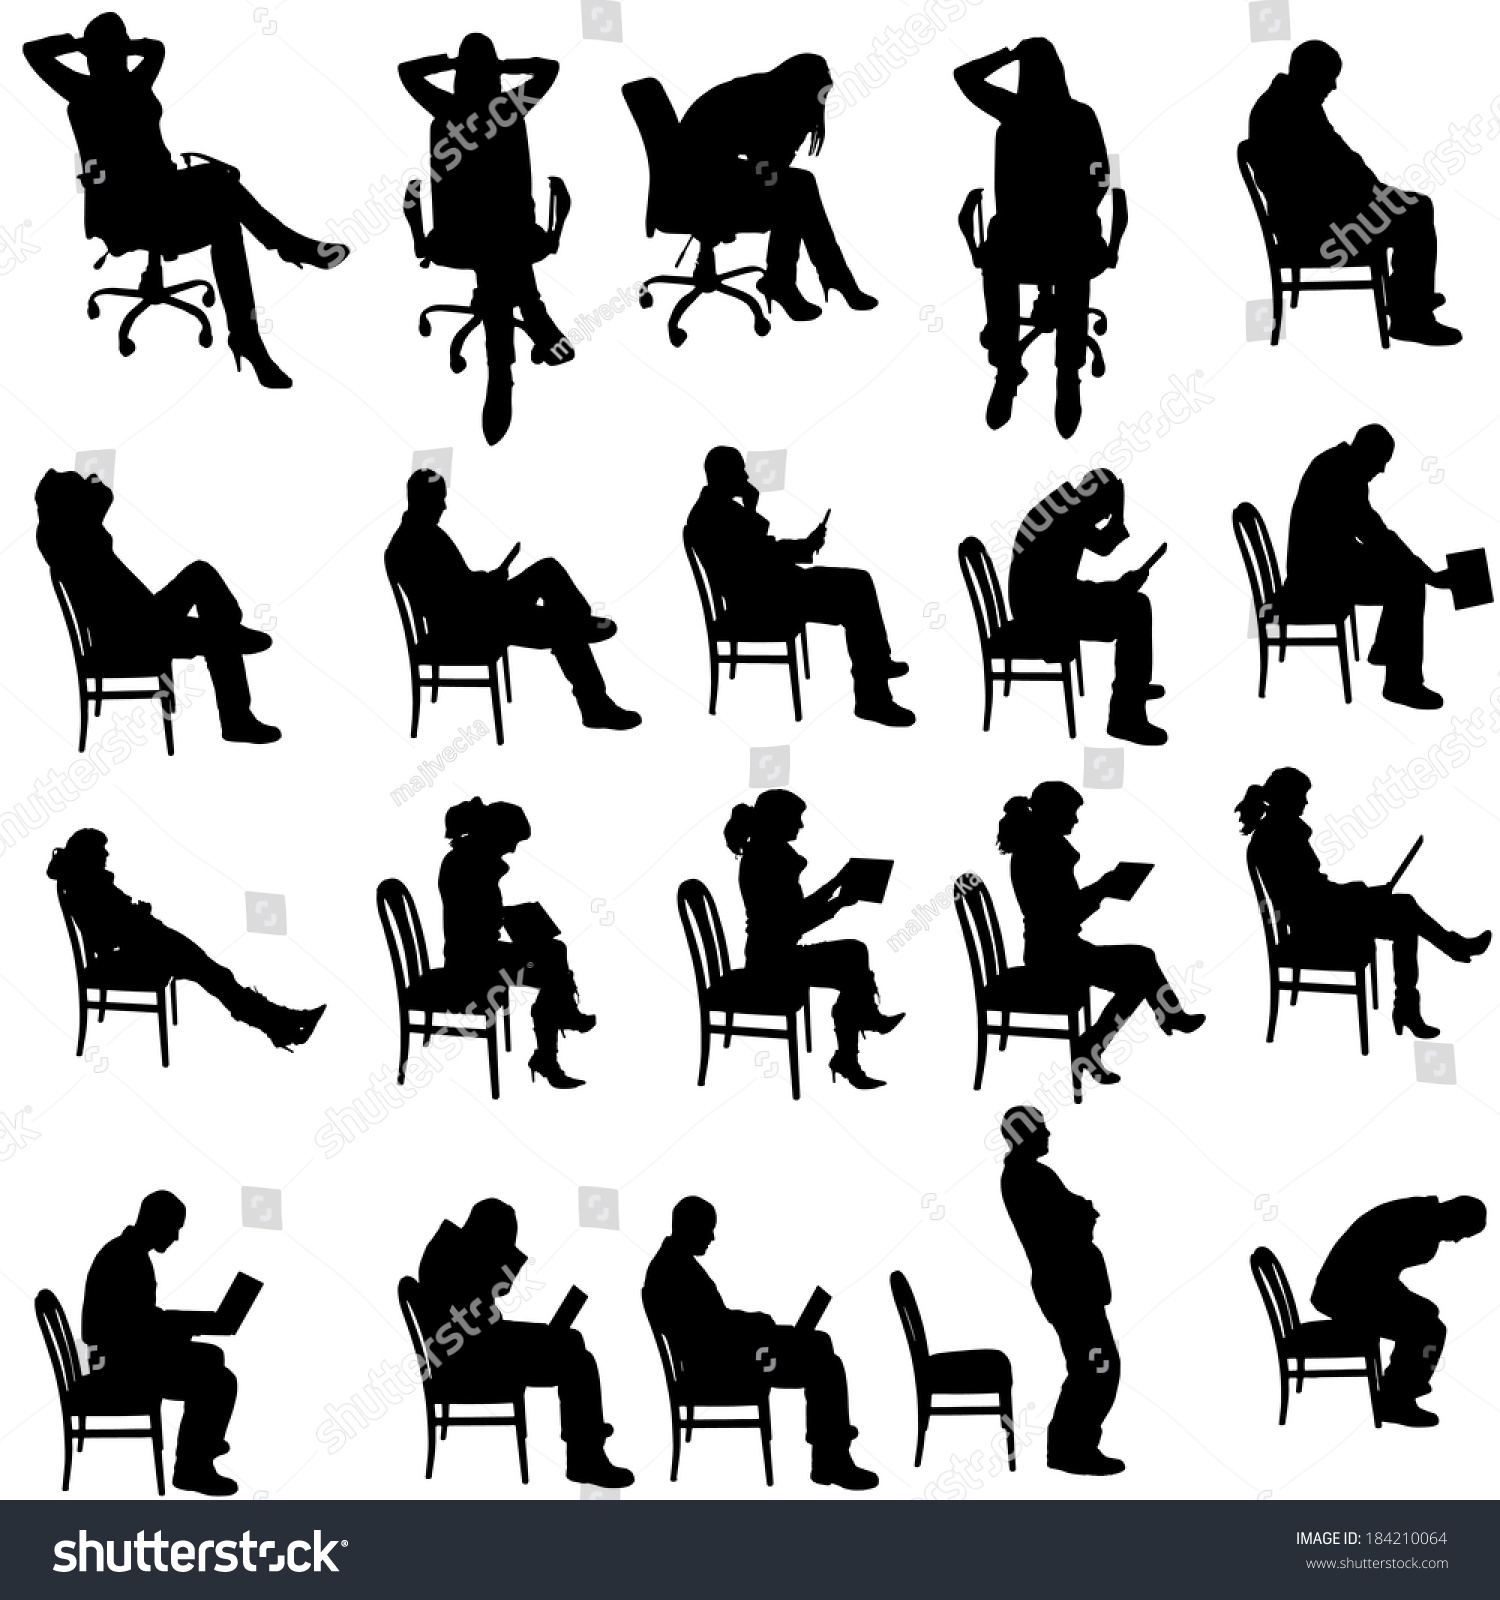 Vector silhouette of people sitting on a white background 184210064